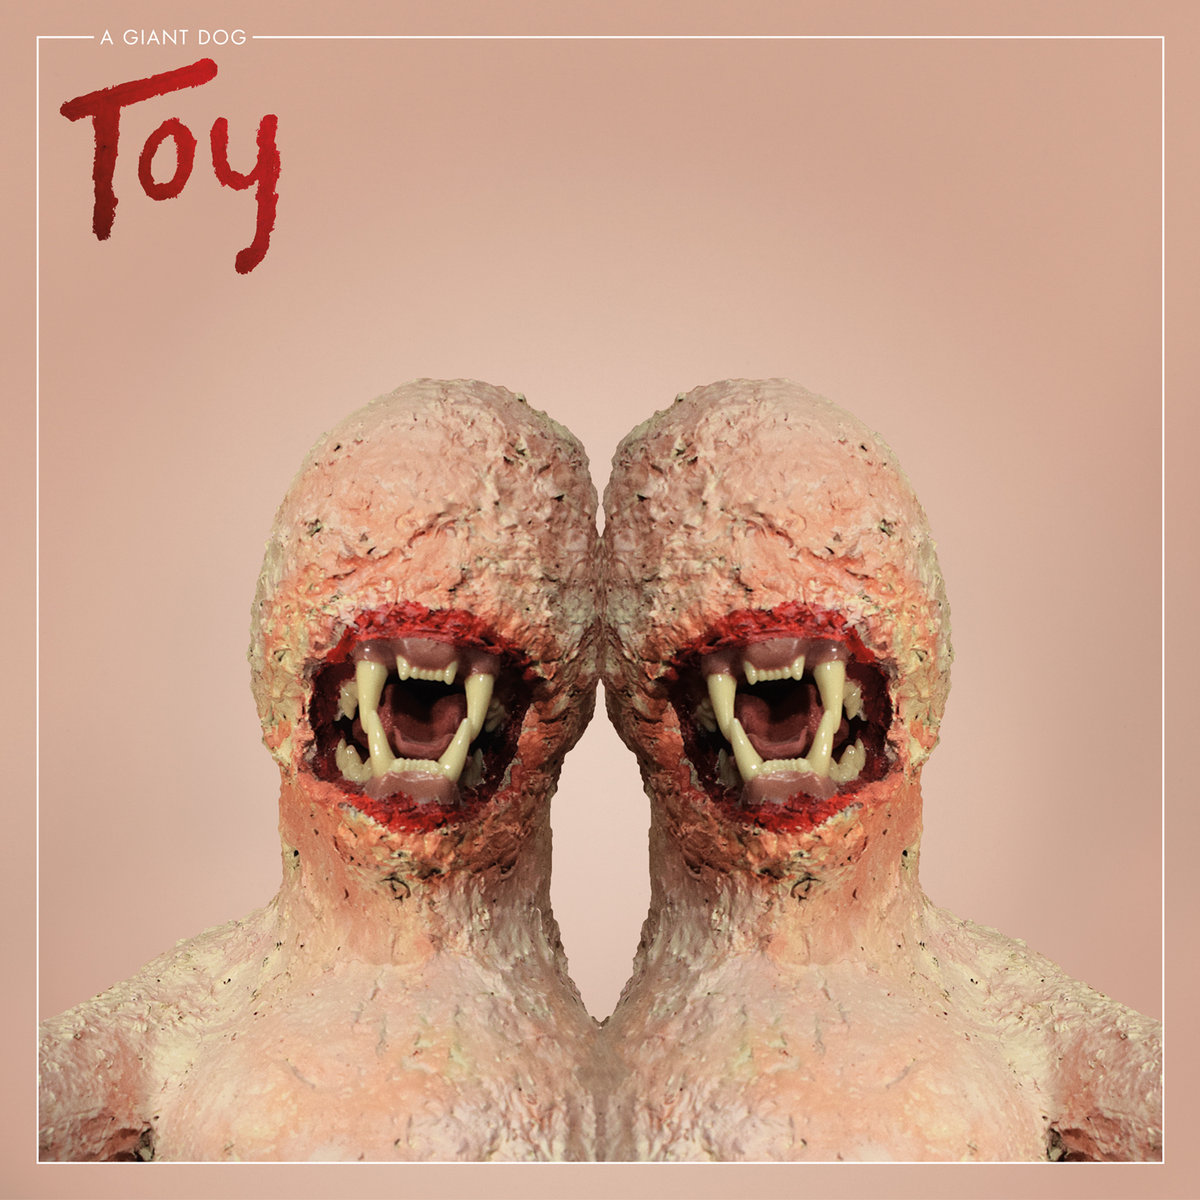 Toy  by A Giant Dog (Image retrieved from https://agiantdog.bandcamp.com/album/toy)